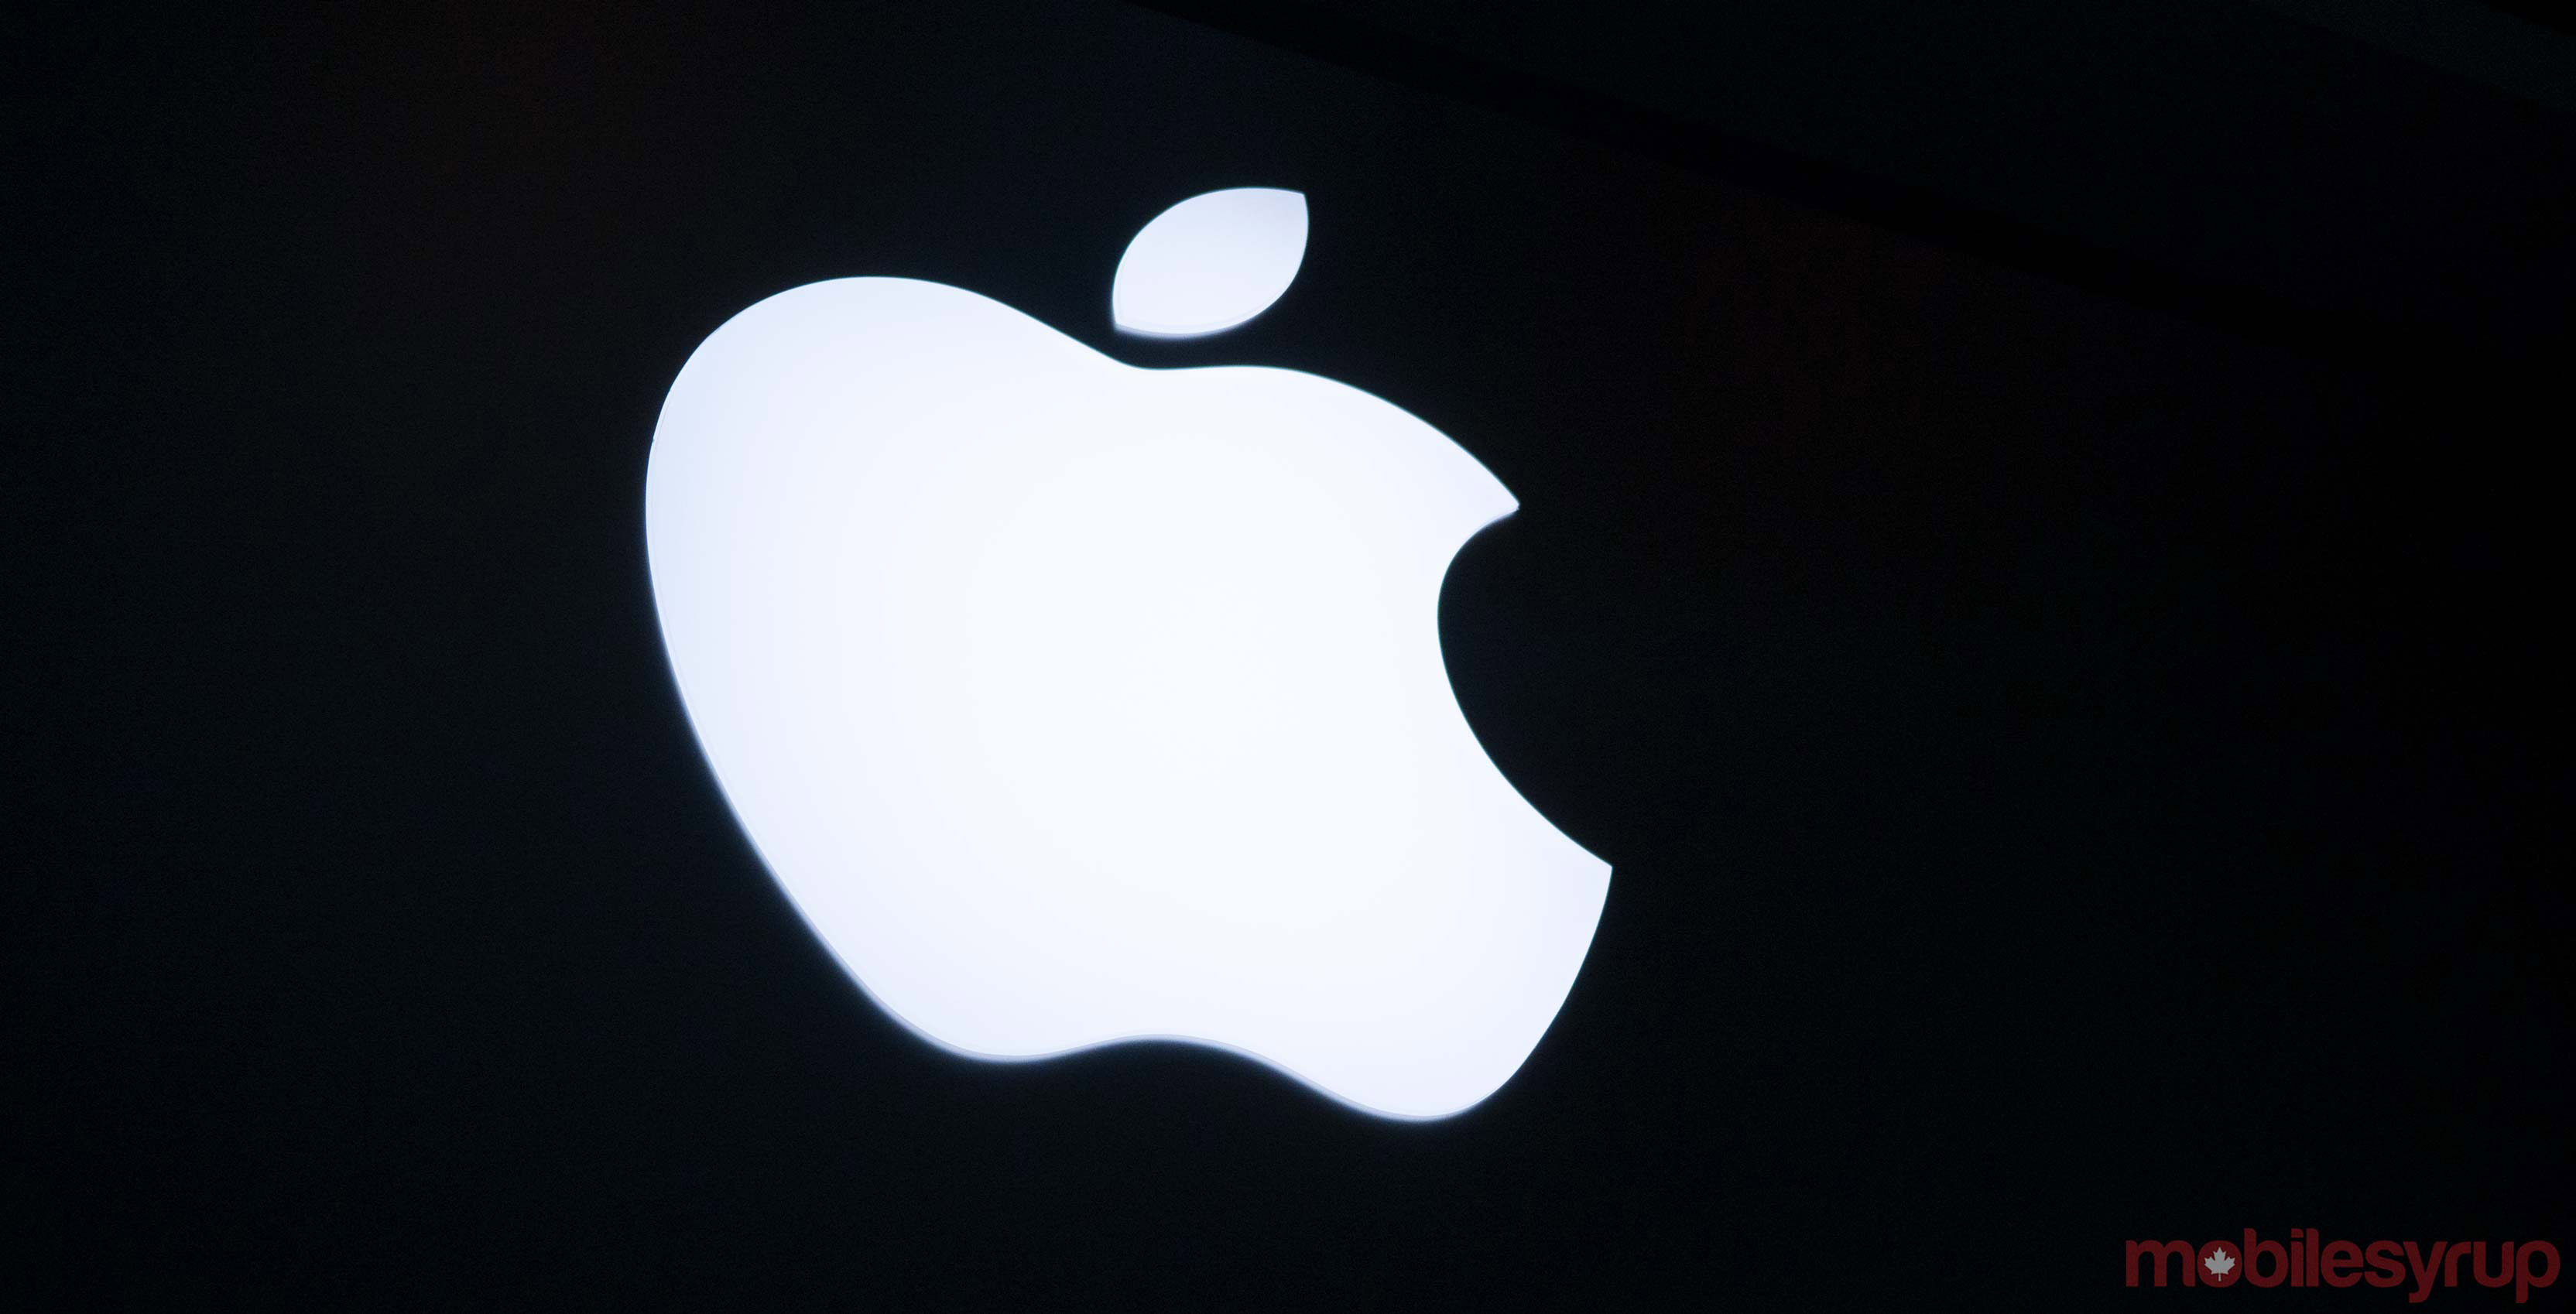 Apple suing company that creates browser-based replica of iOS